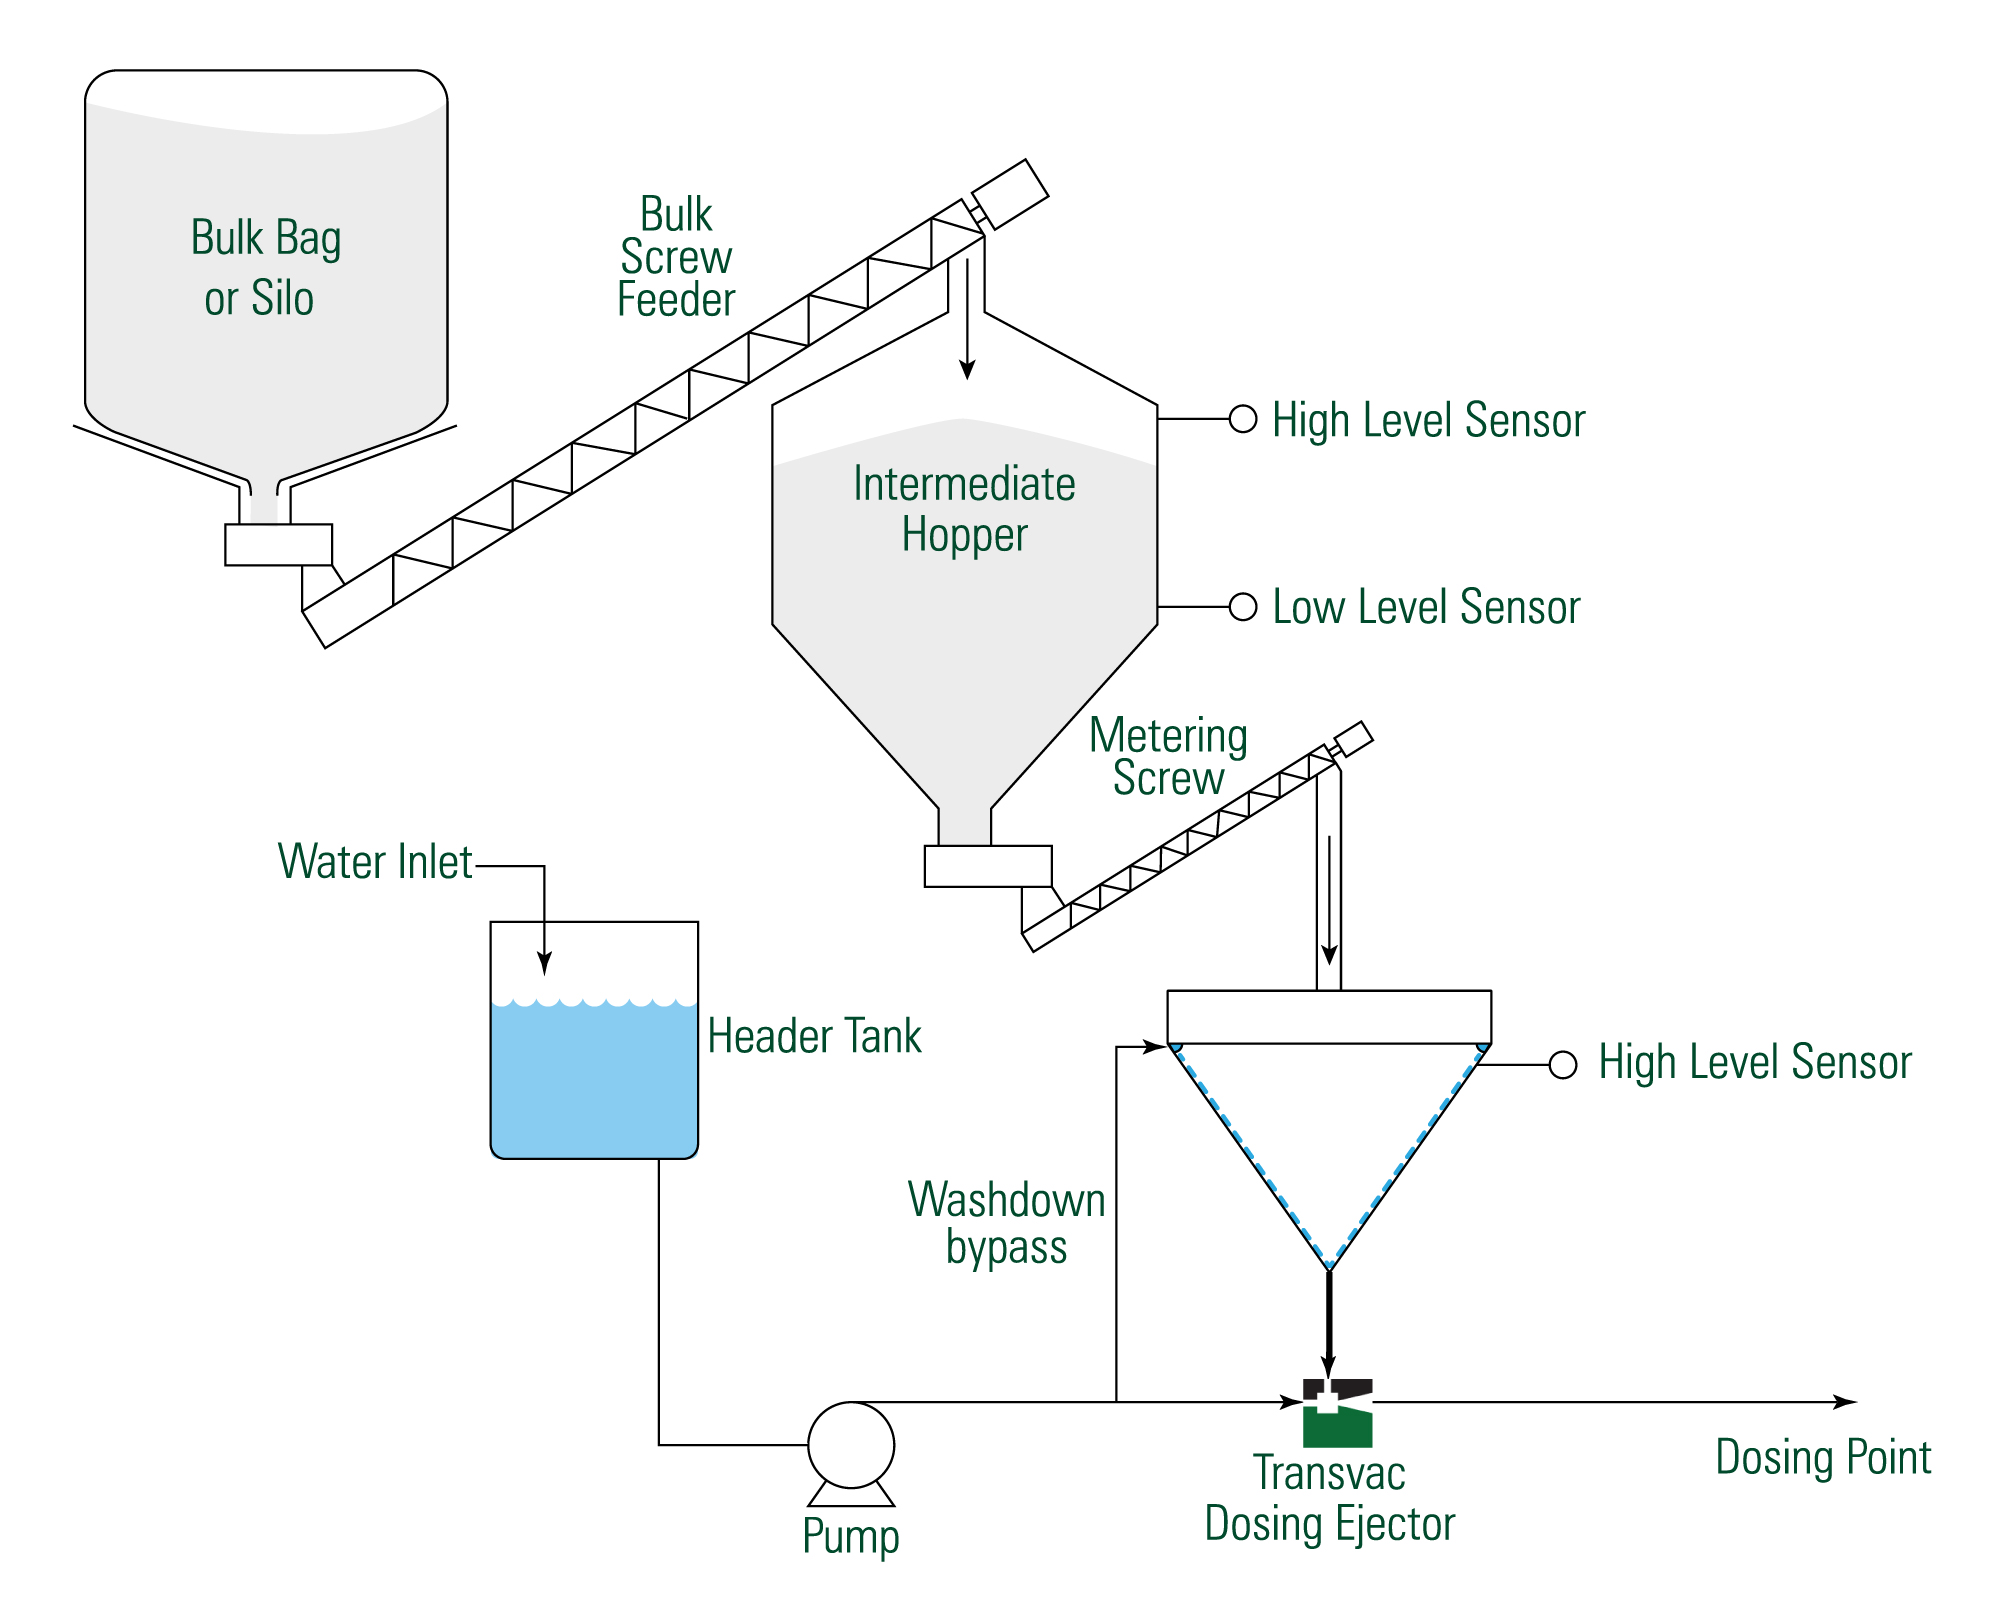 TransPAC System Process Overview